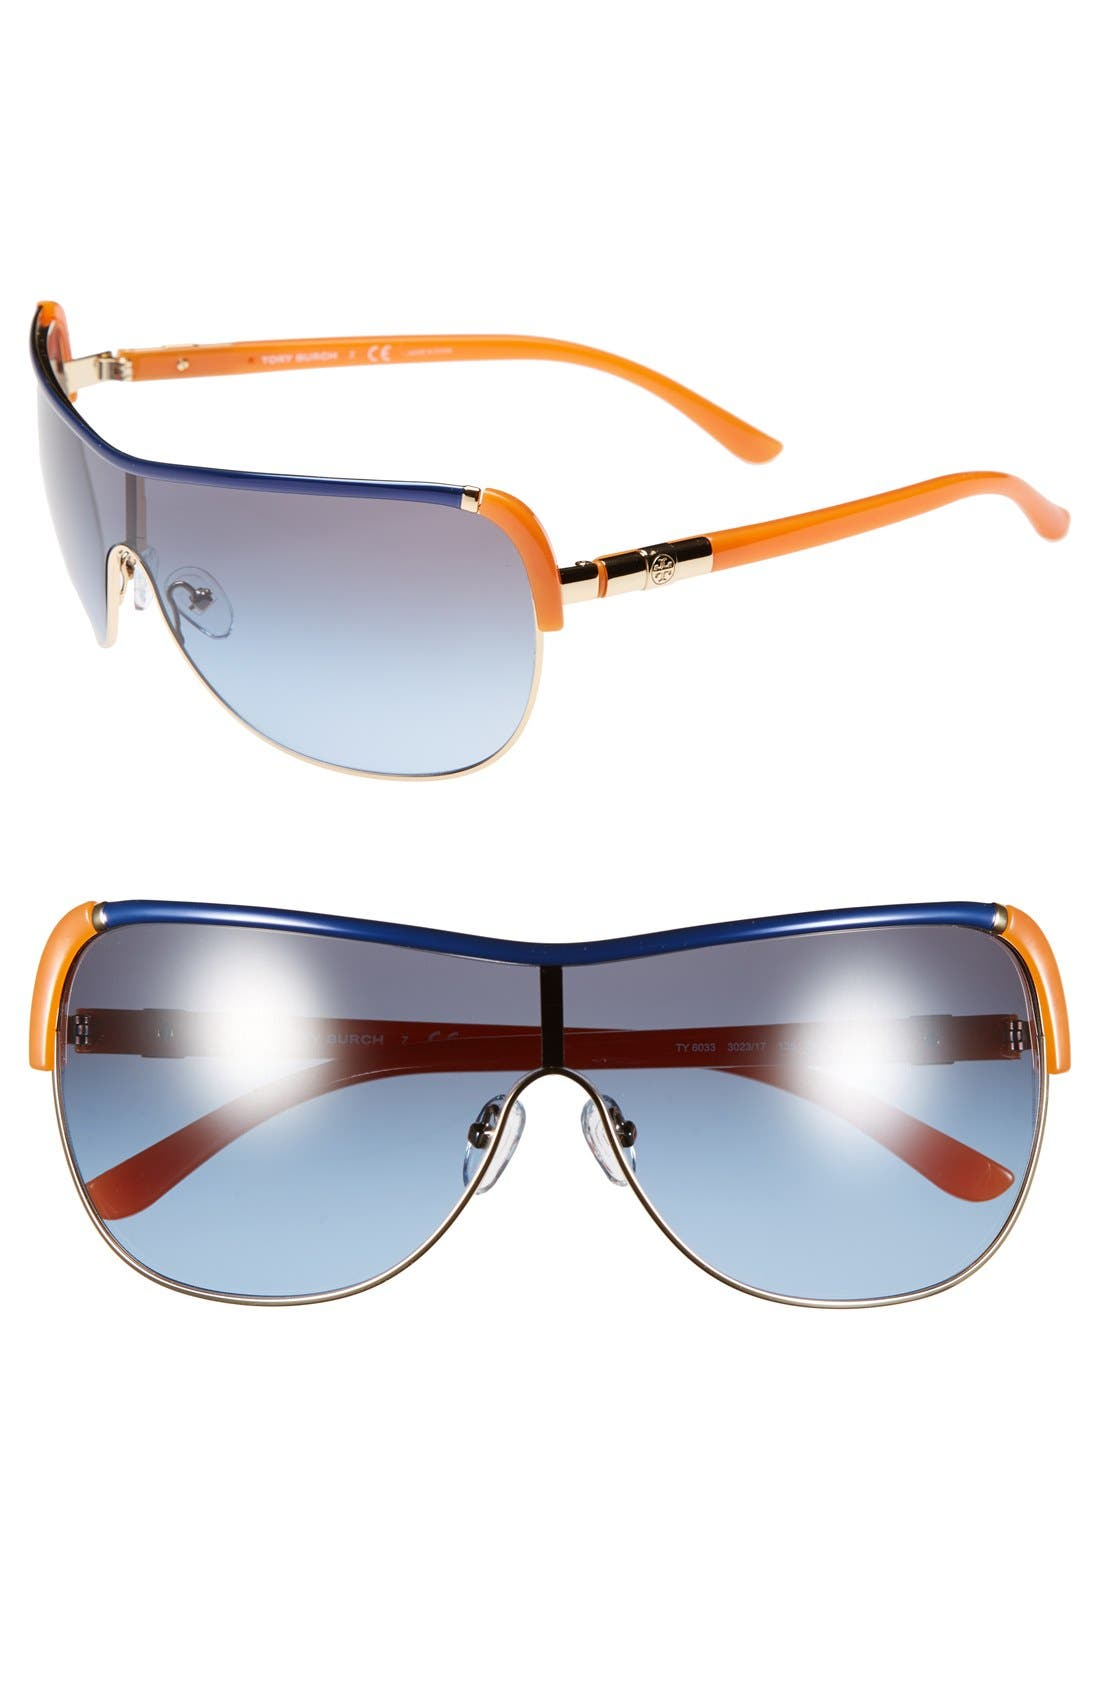 Alternate Image 1 Selected - Tory Burch 'Pilot' 34mm Metal Wrap Sunglasses